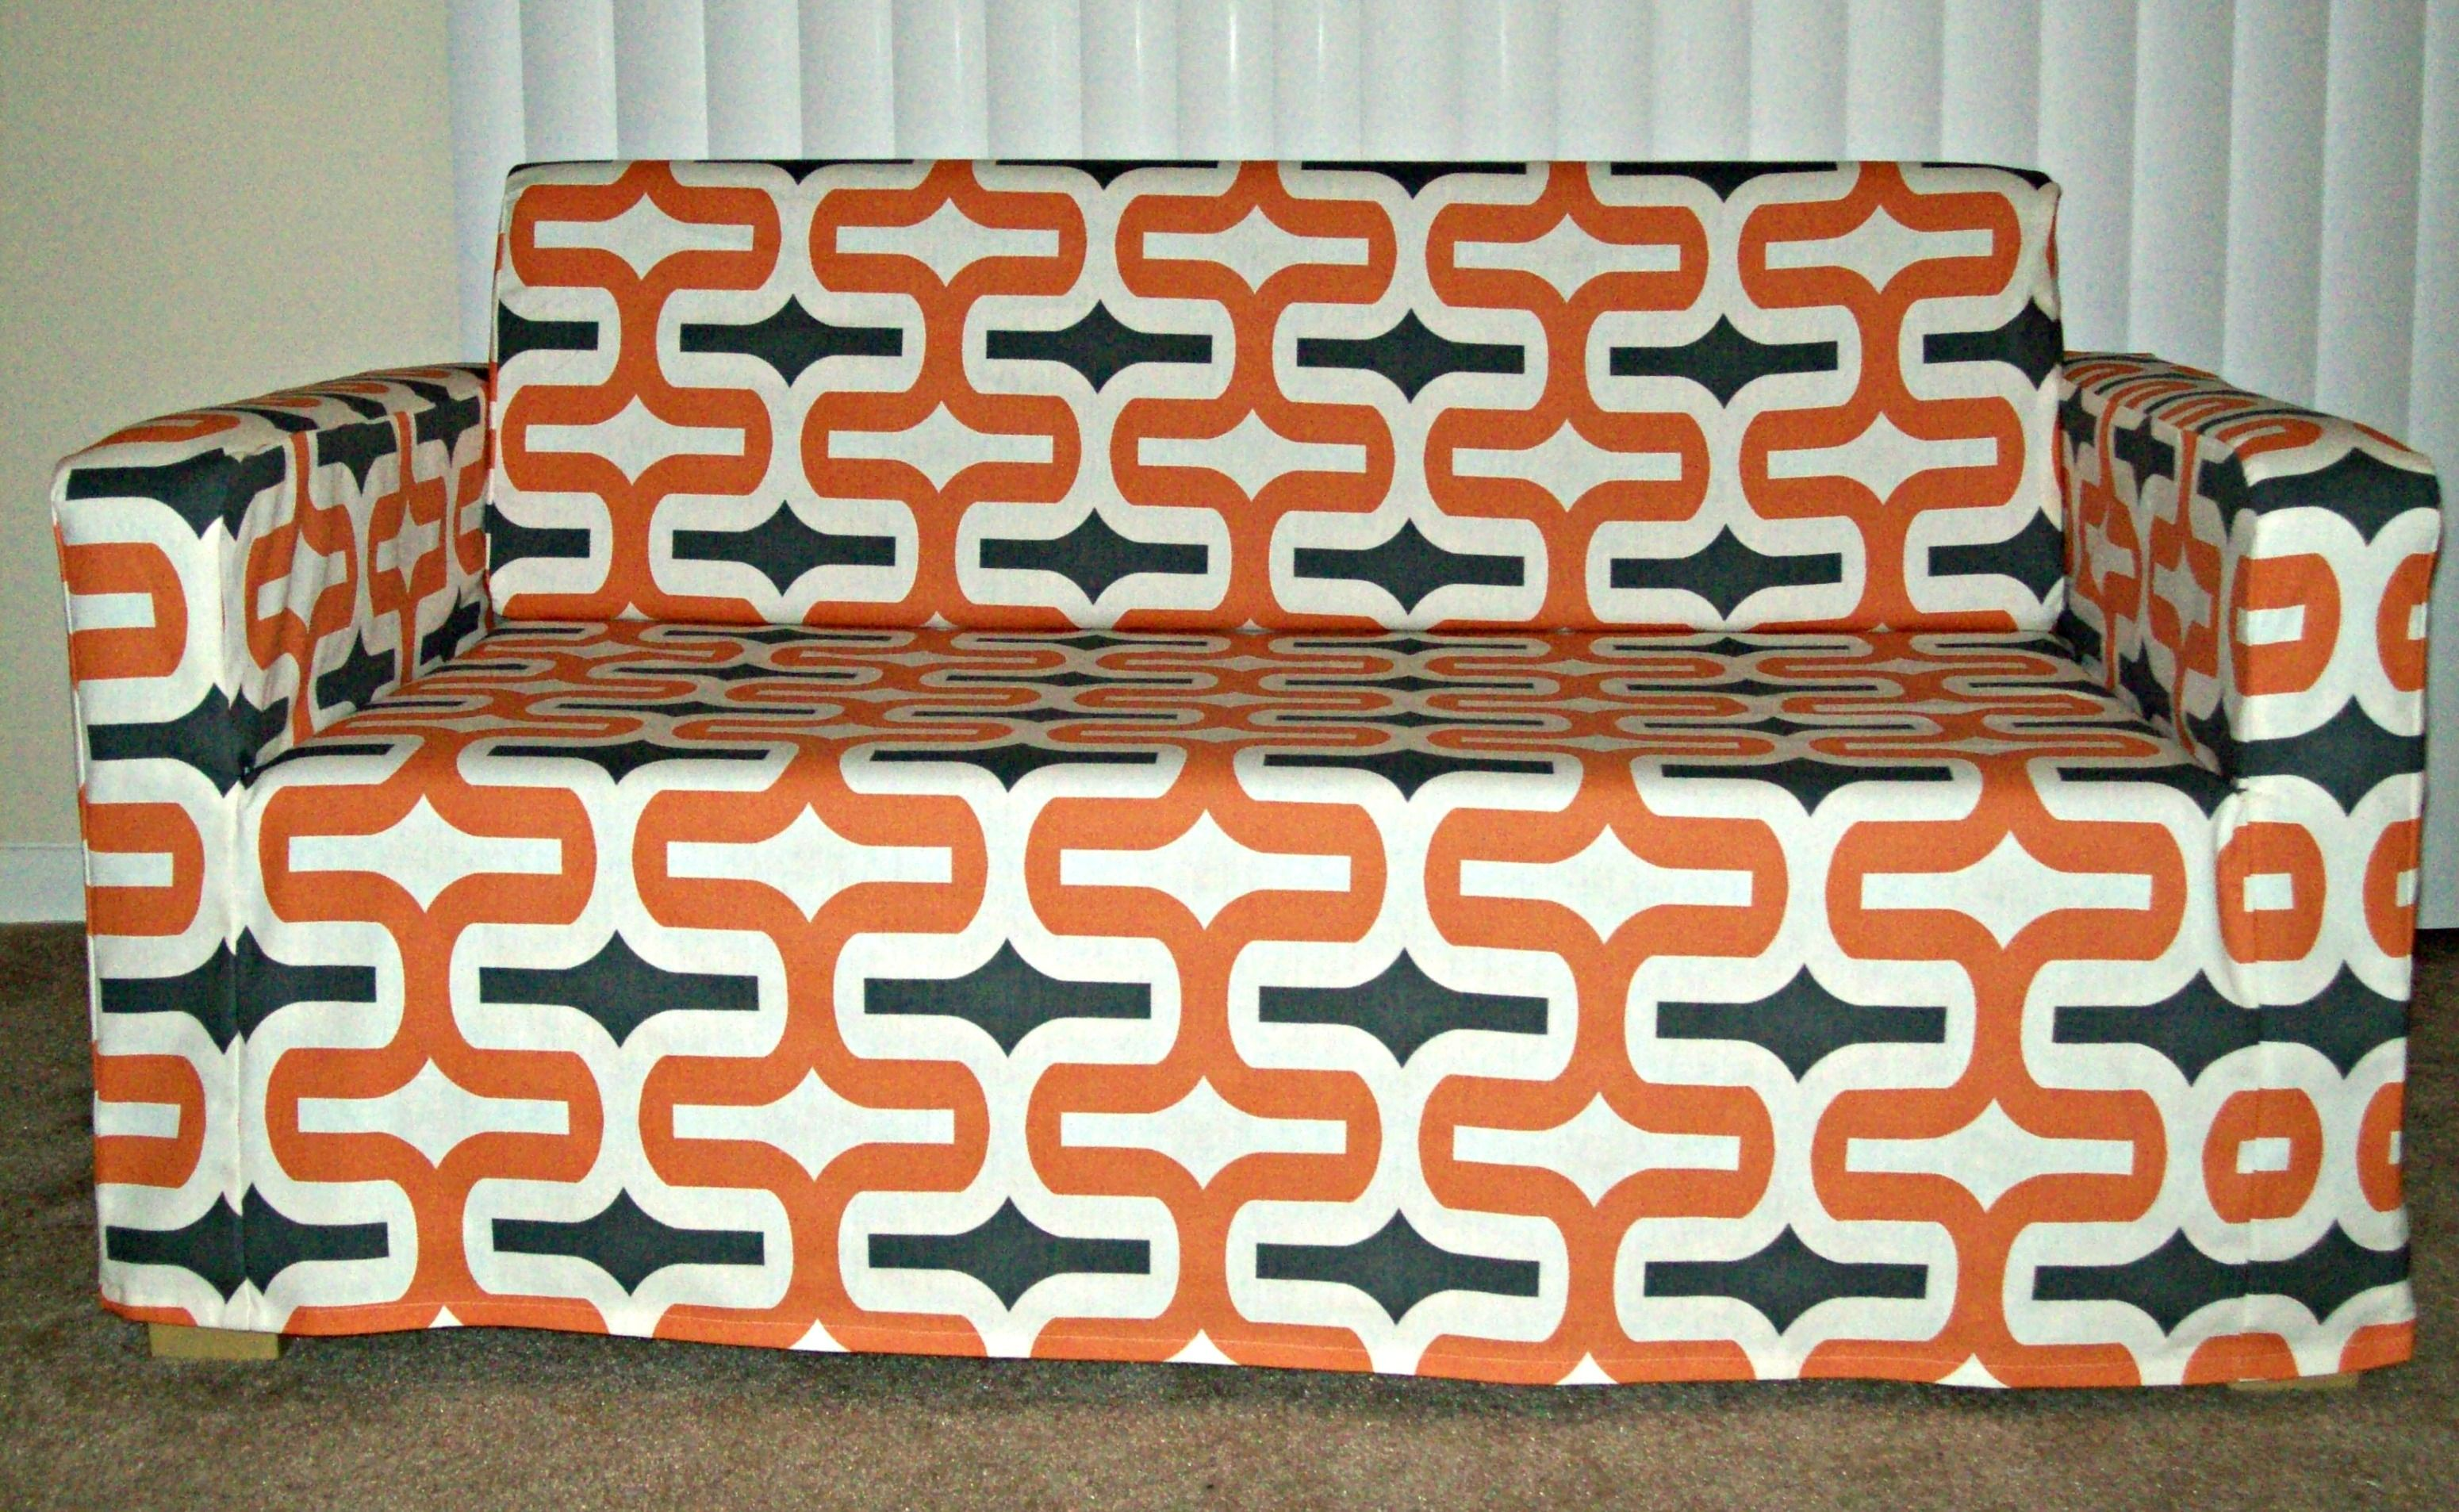 Bettsofa Orange Custom Cover Made By Roozimsy For The Ikea Solsta Sofa Bed In